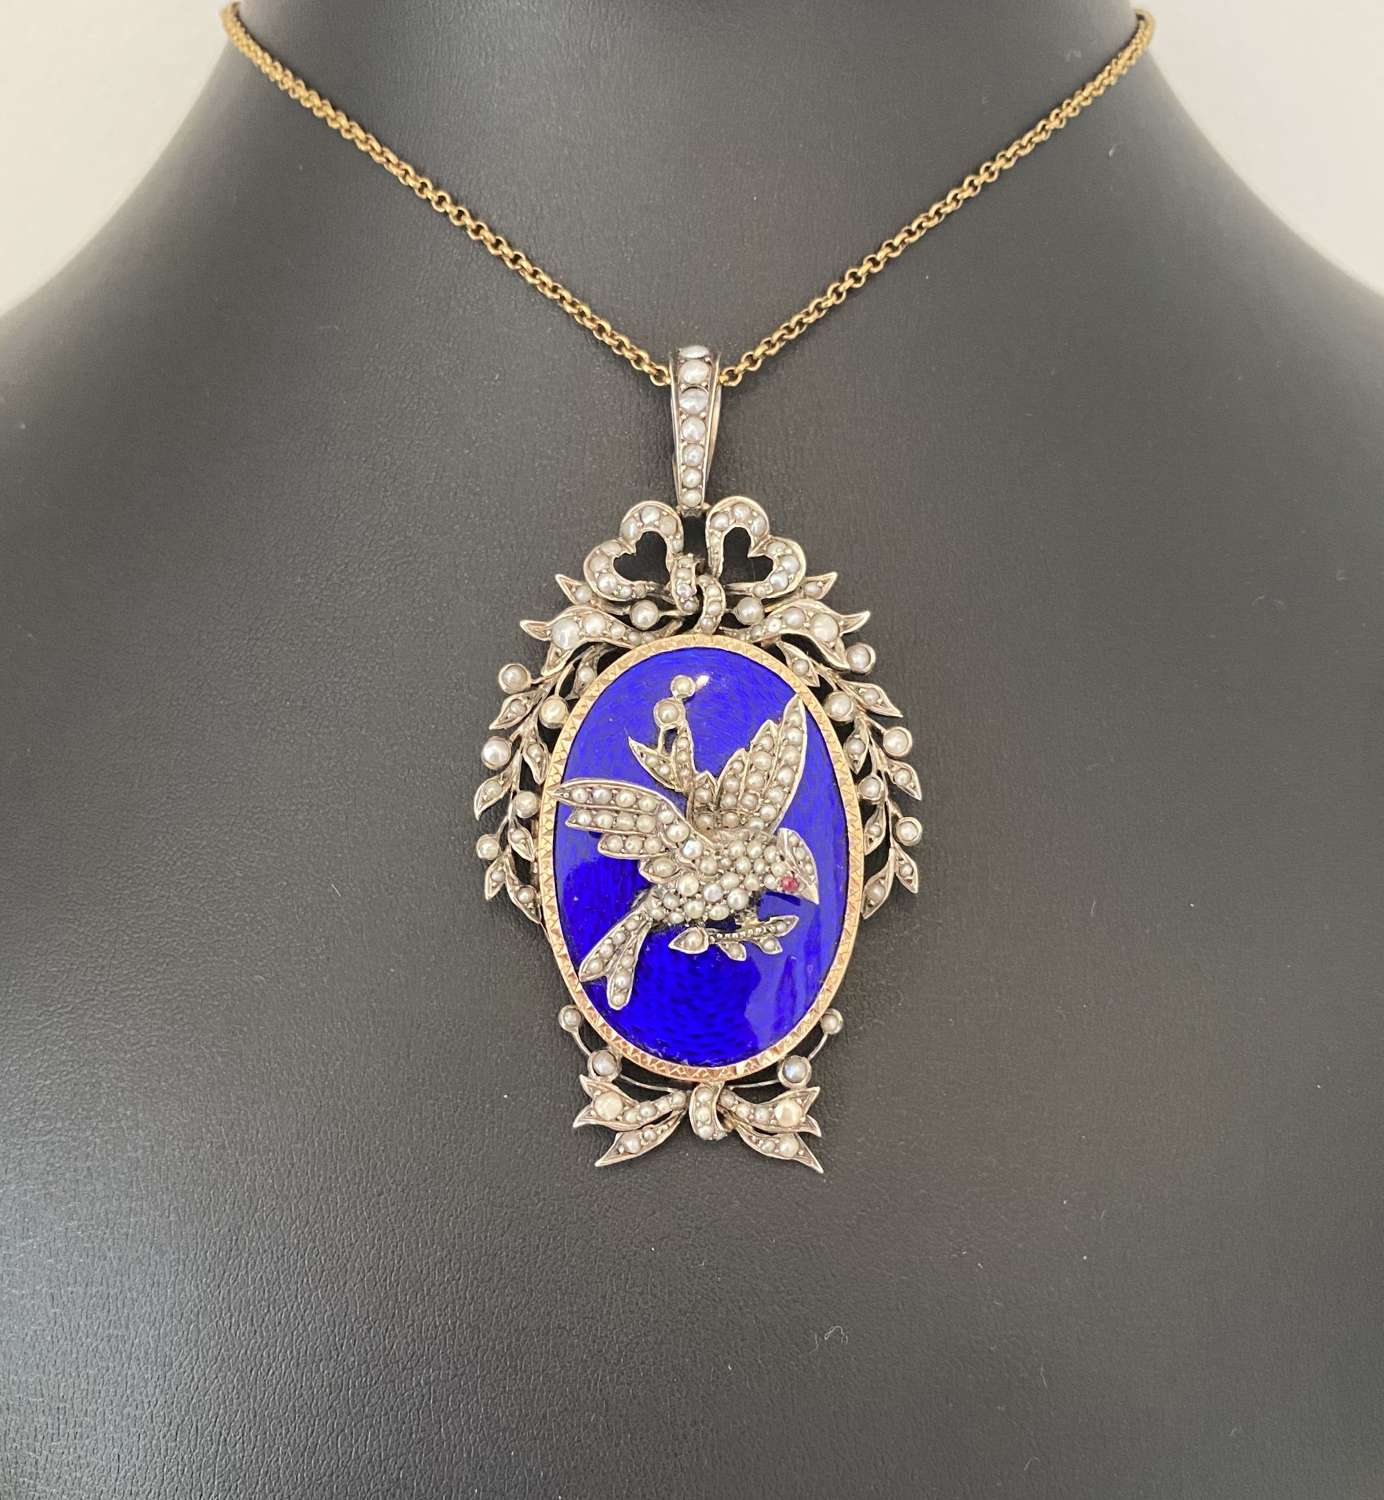 French Enamelled Locket